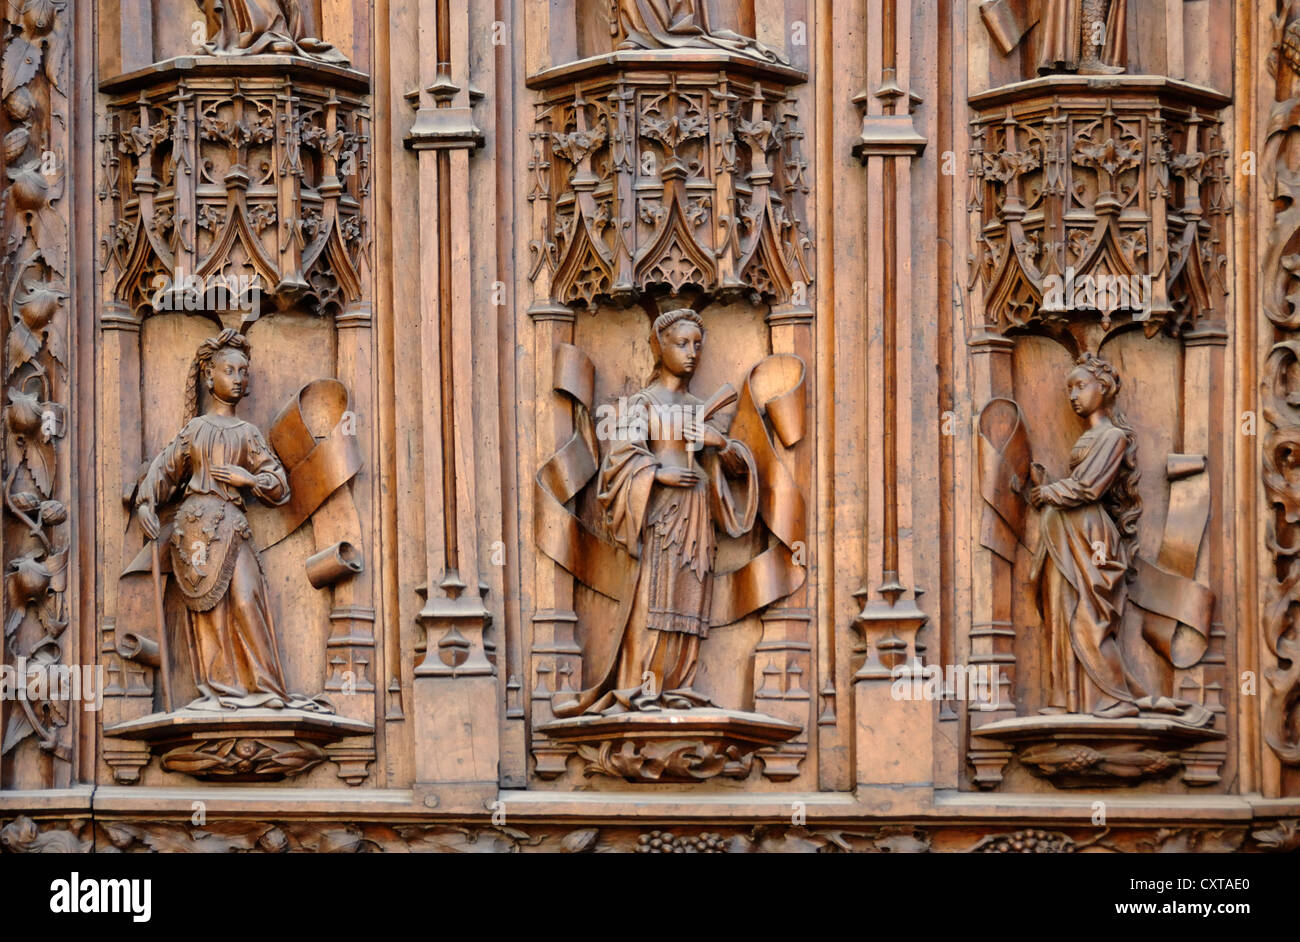 Wooden Carvings of Female Figures on Medieval Door Aix-en-Provence Cathedral Provence France - Stock Image